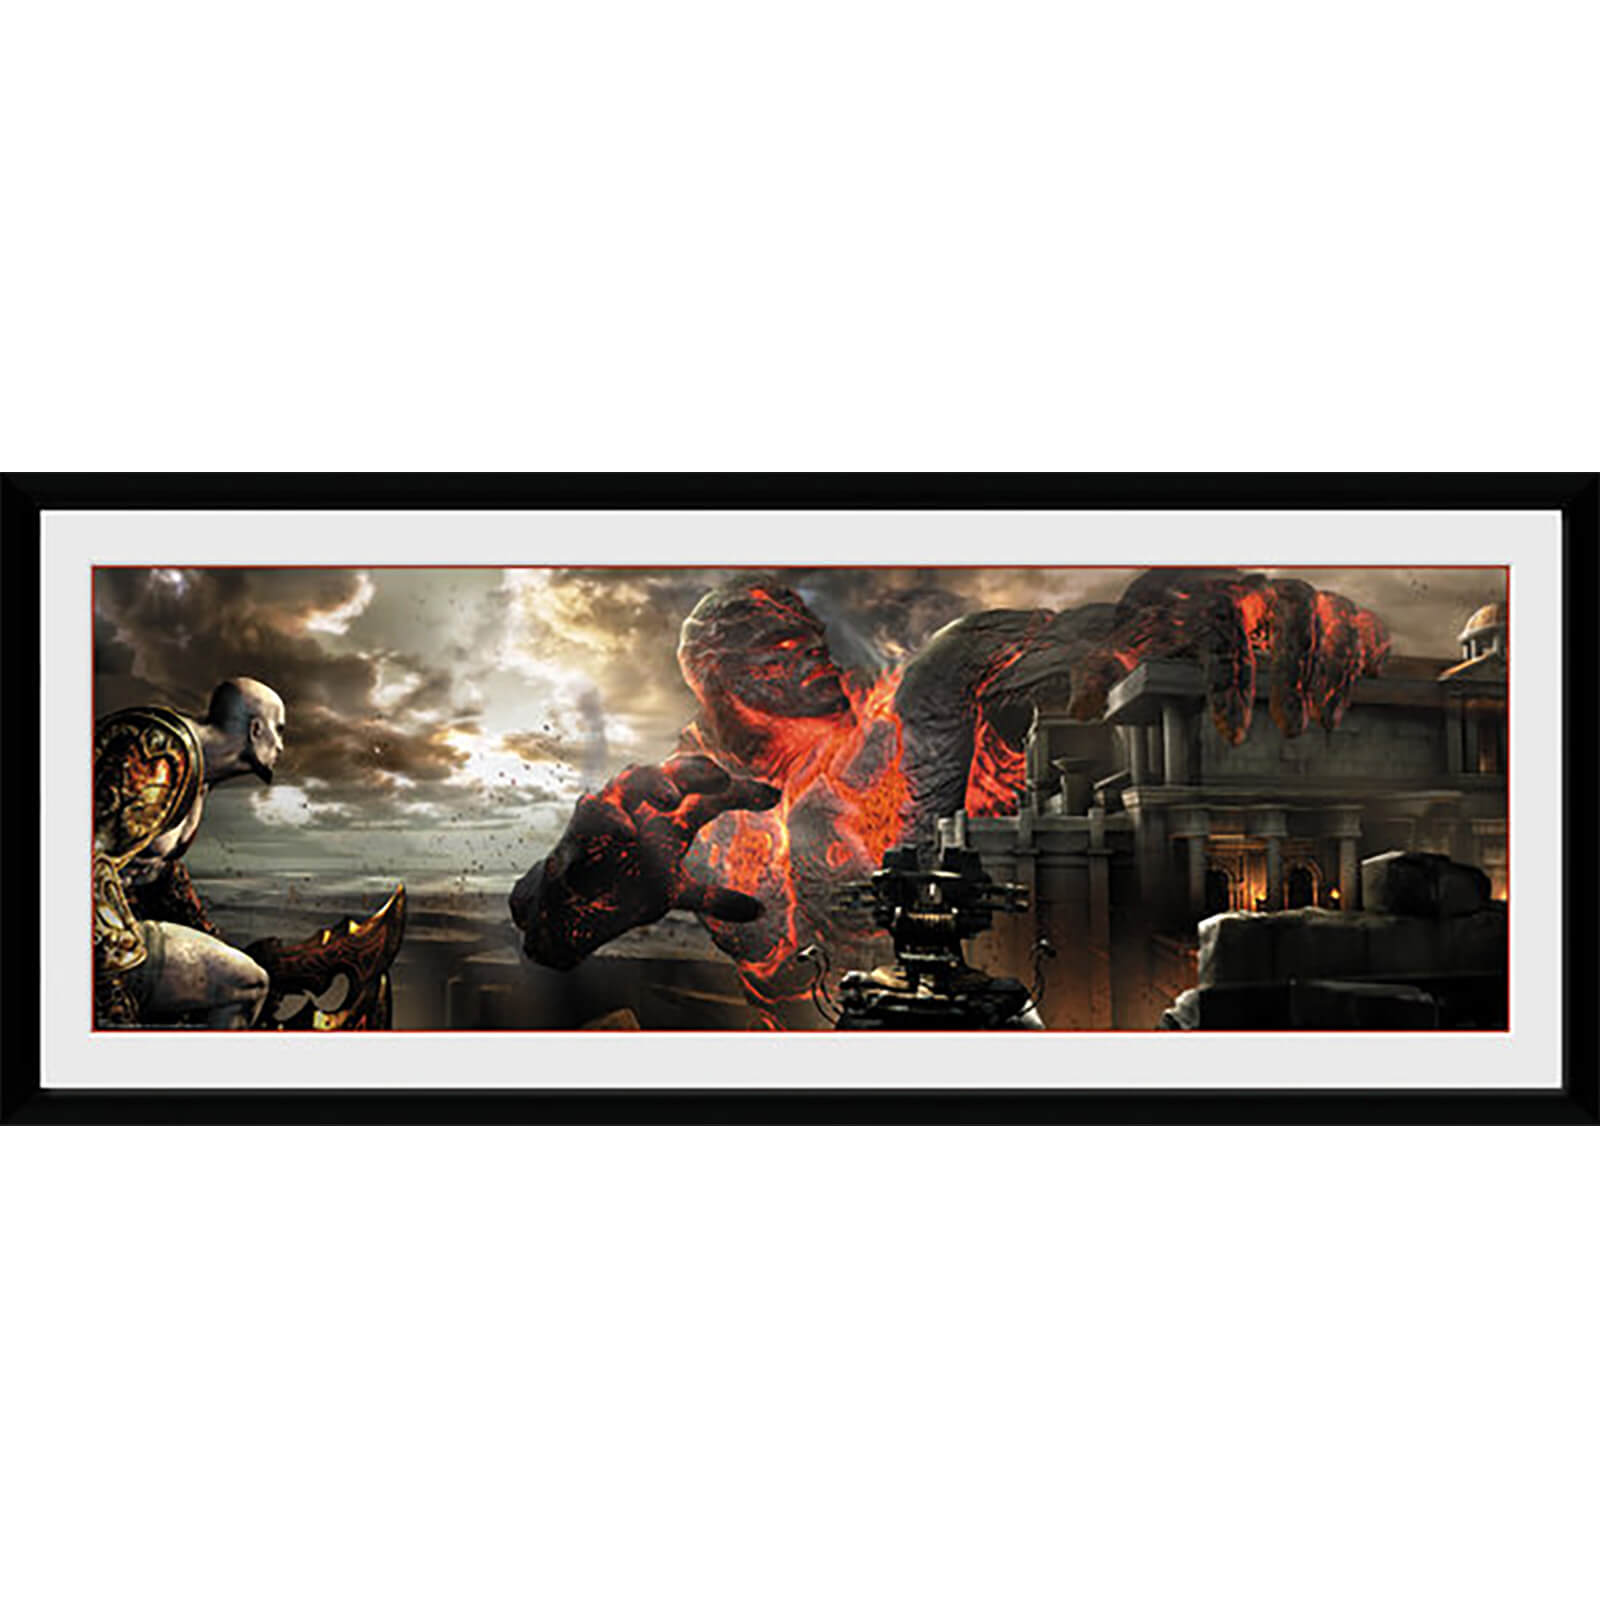 God of War Titan - 30 x 12 Inches Framed Photograph